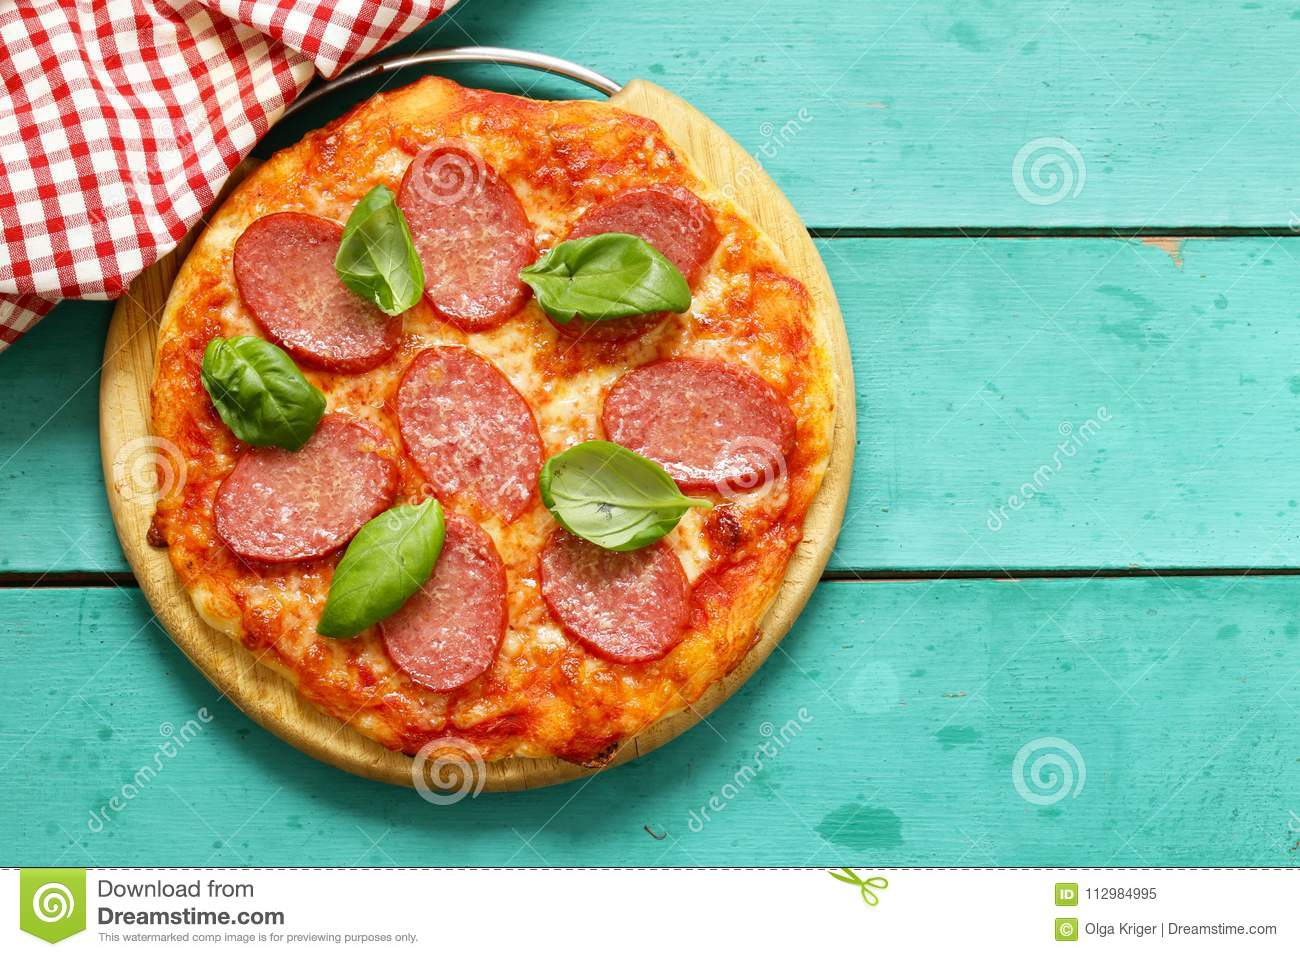 Pepperoni pizza with fresh basil